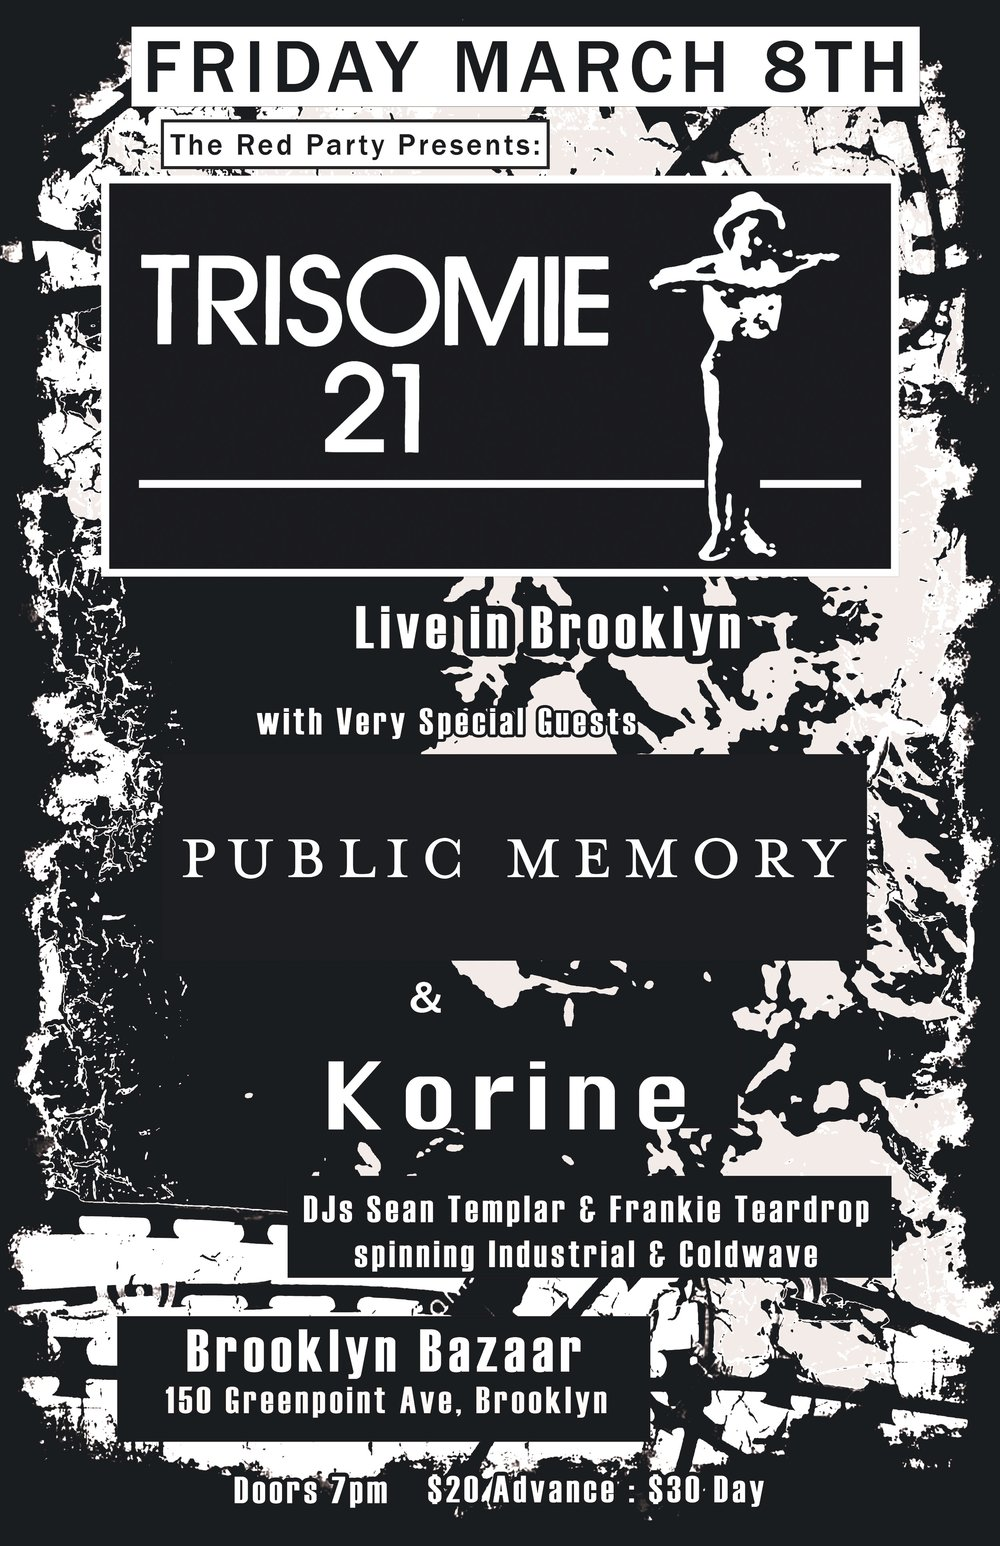 Trisomie 21withSpecial GuestsPublic Memory&Korine - Friday March 8THFor the first time in America, The Red Party is proud to present Coldwave pioneers and Post Punk Legends Trisomie 21 along with two very special guests Public Memory & Korine.TRISOMIE 21https://soundcloud.com/user-428790978http://www.trisomie21.tv/https://www.facebook.com/trisomie21/with special guestsPublic Memoryhttps://publicmemory.bandcamp.com/https://www.facebook.com/thepublicmemory/&Korinehttps://www.facebook.com/korineband/https://korine.bandcamp.com/album/new-arrangementsDJs Sean Templar & Frankie Teardropspin Coldwave & Post Punk throughout the Night!Brooklyn Bazaar150 Greenpoint Ave, Brooklyn$20 Advance / $30 Day Doors 7pm - MidnightTrisomie 21, the mythical French band, will be making their first ever NYC appearance on March 8th. Without a doubt, it will be a very special concert, in which they will review their 35 years of history, full of successes, in addition to presenting their acclaimed new album